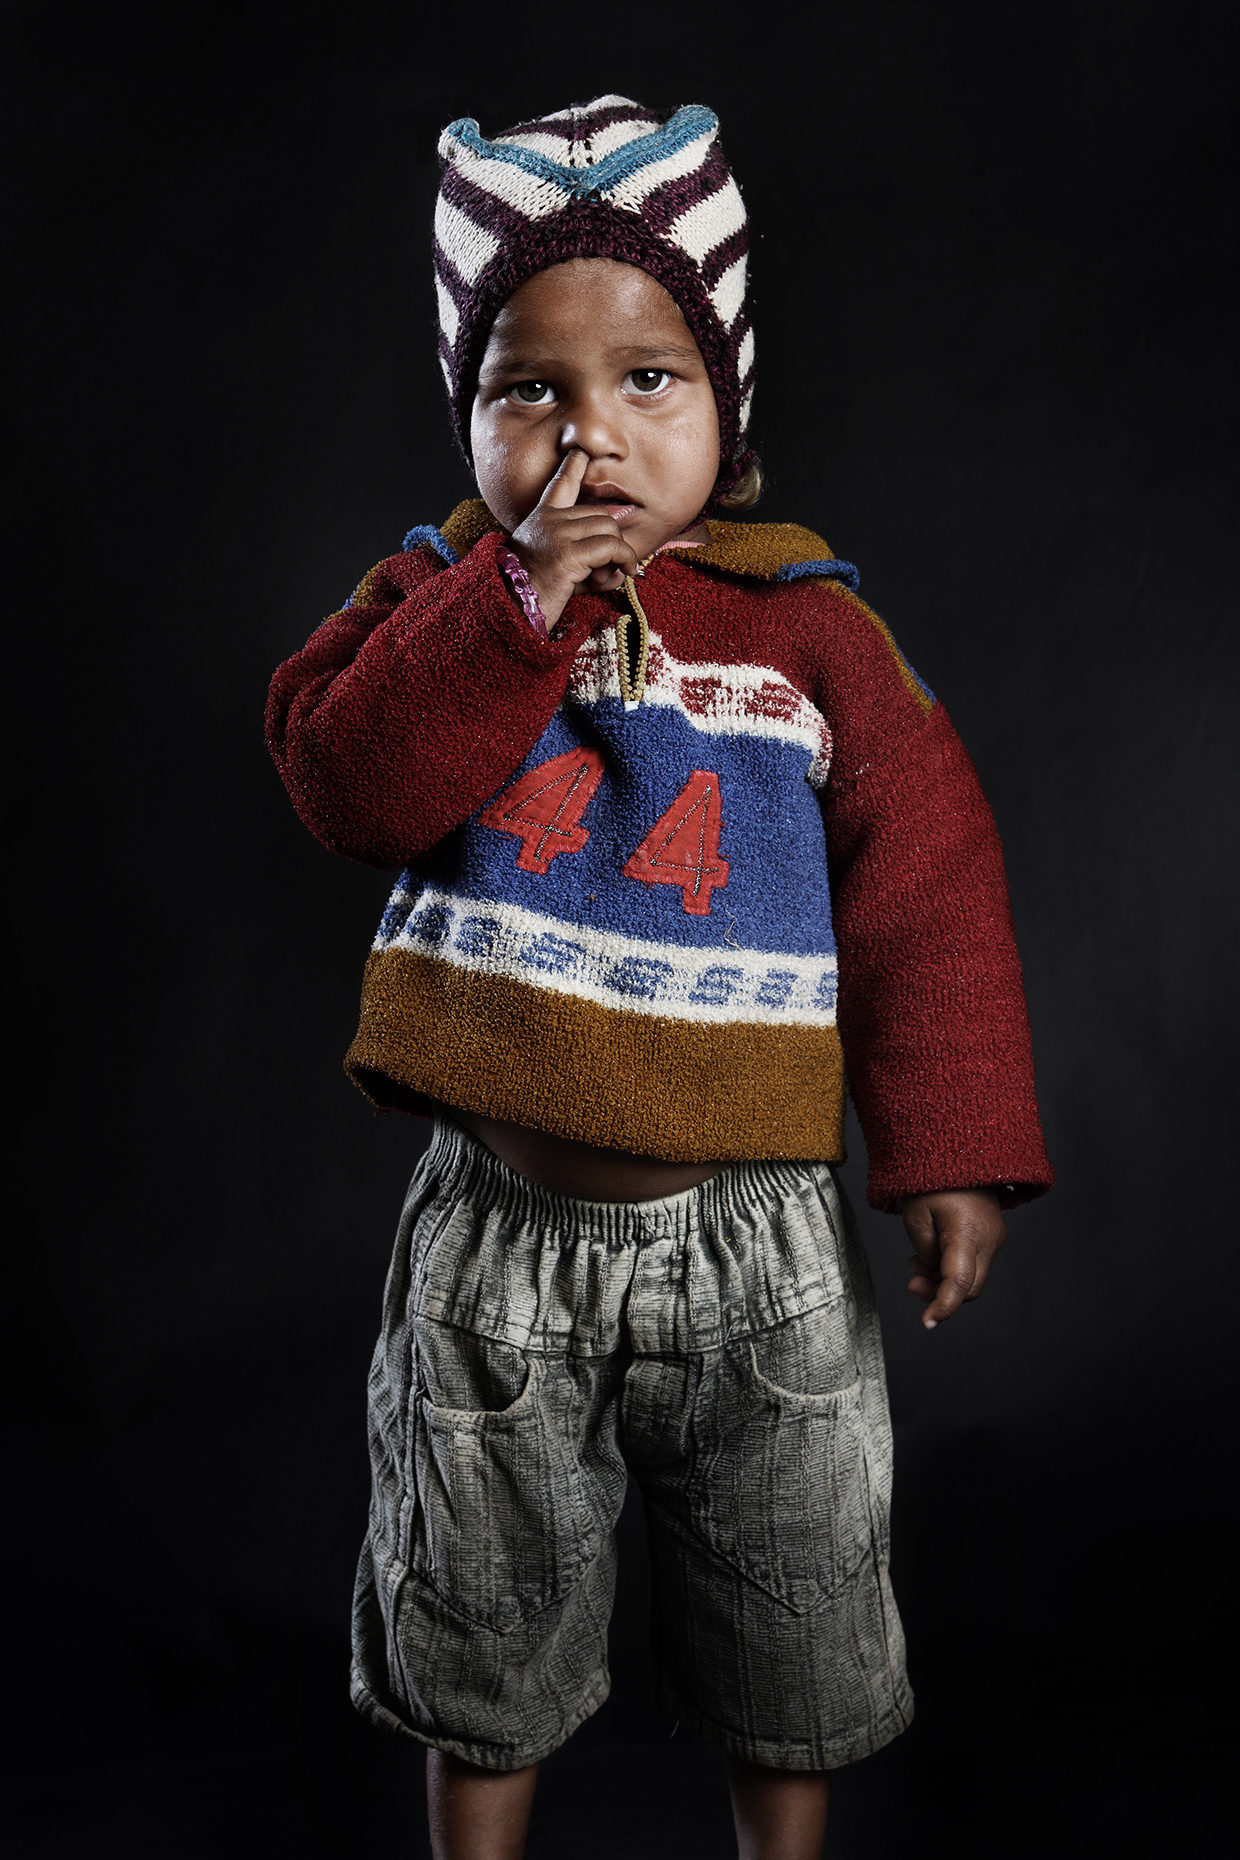 Child posing in front of the camera with his finger in the nose